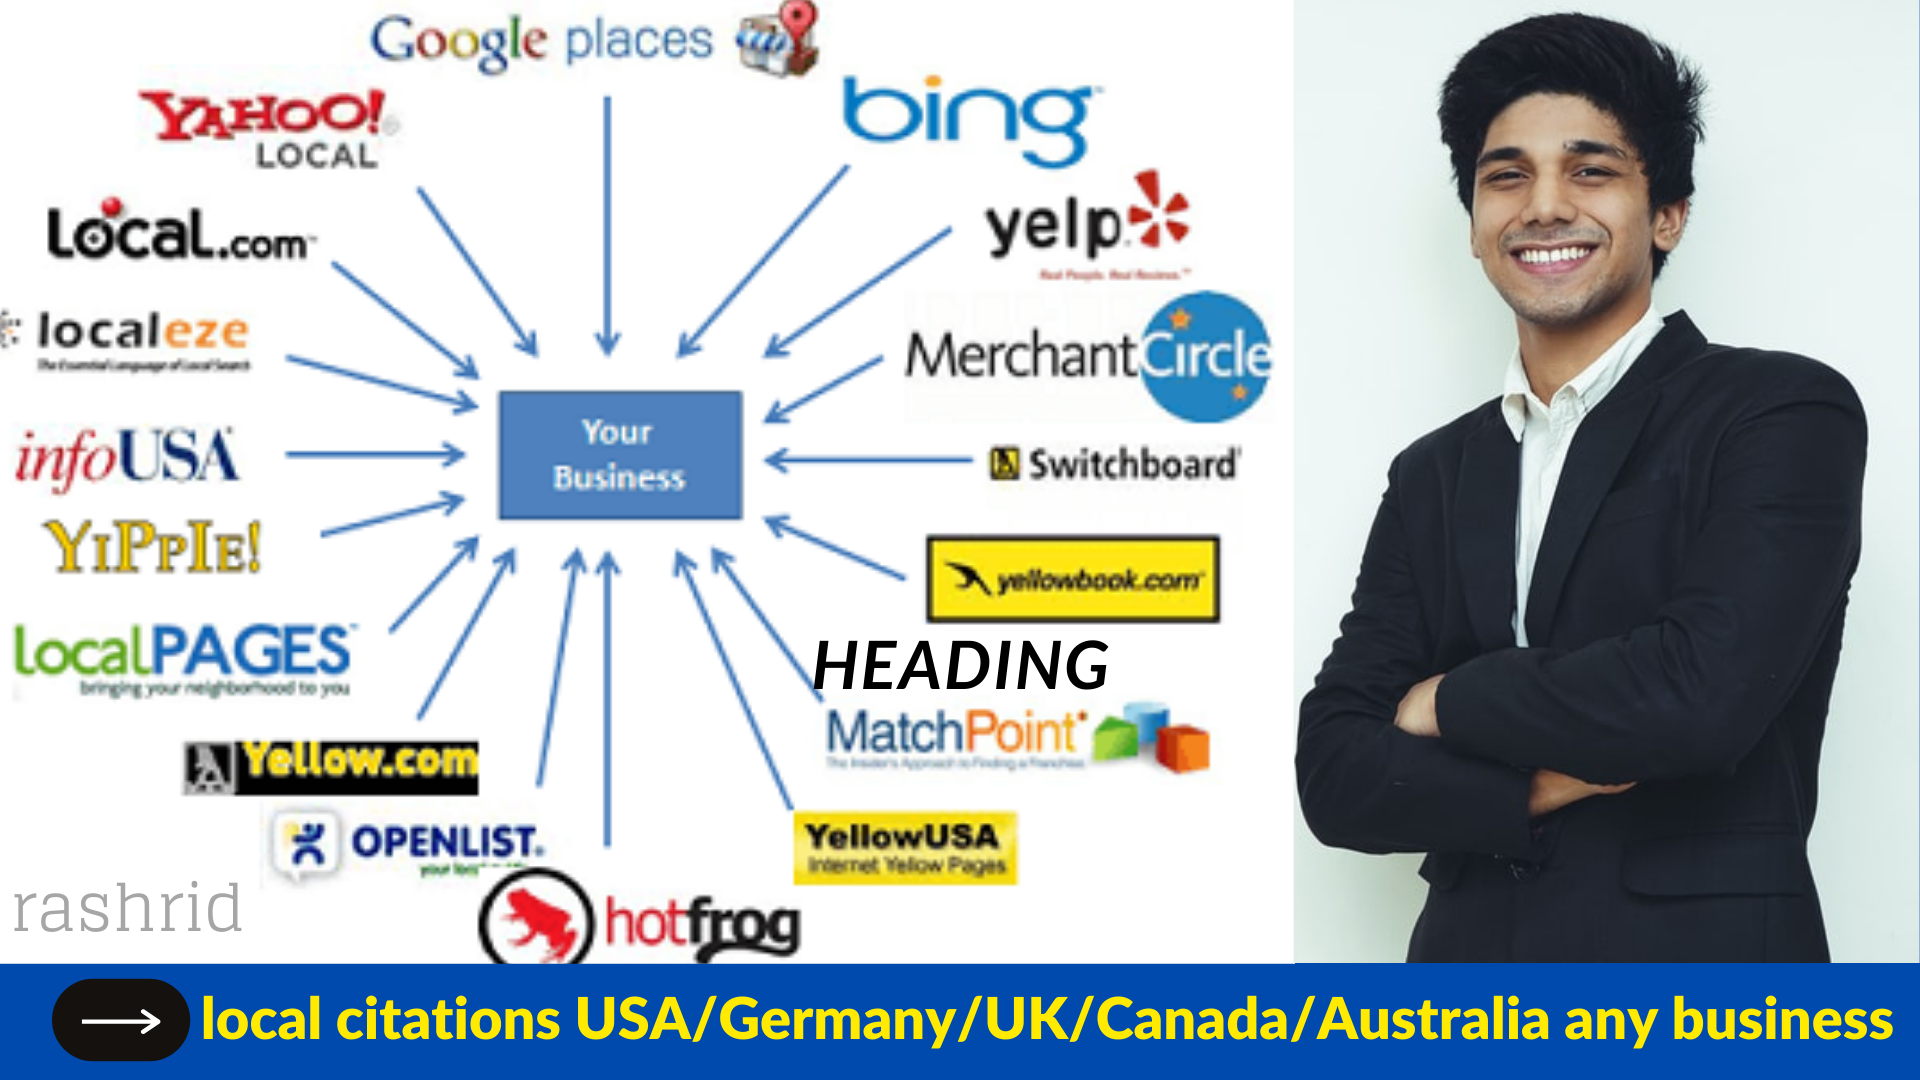 Get Accurate 300 local citations for local listings for USA/Germany/UK/Canada/Australia any business